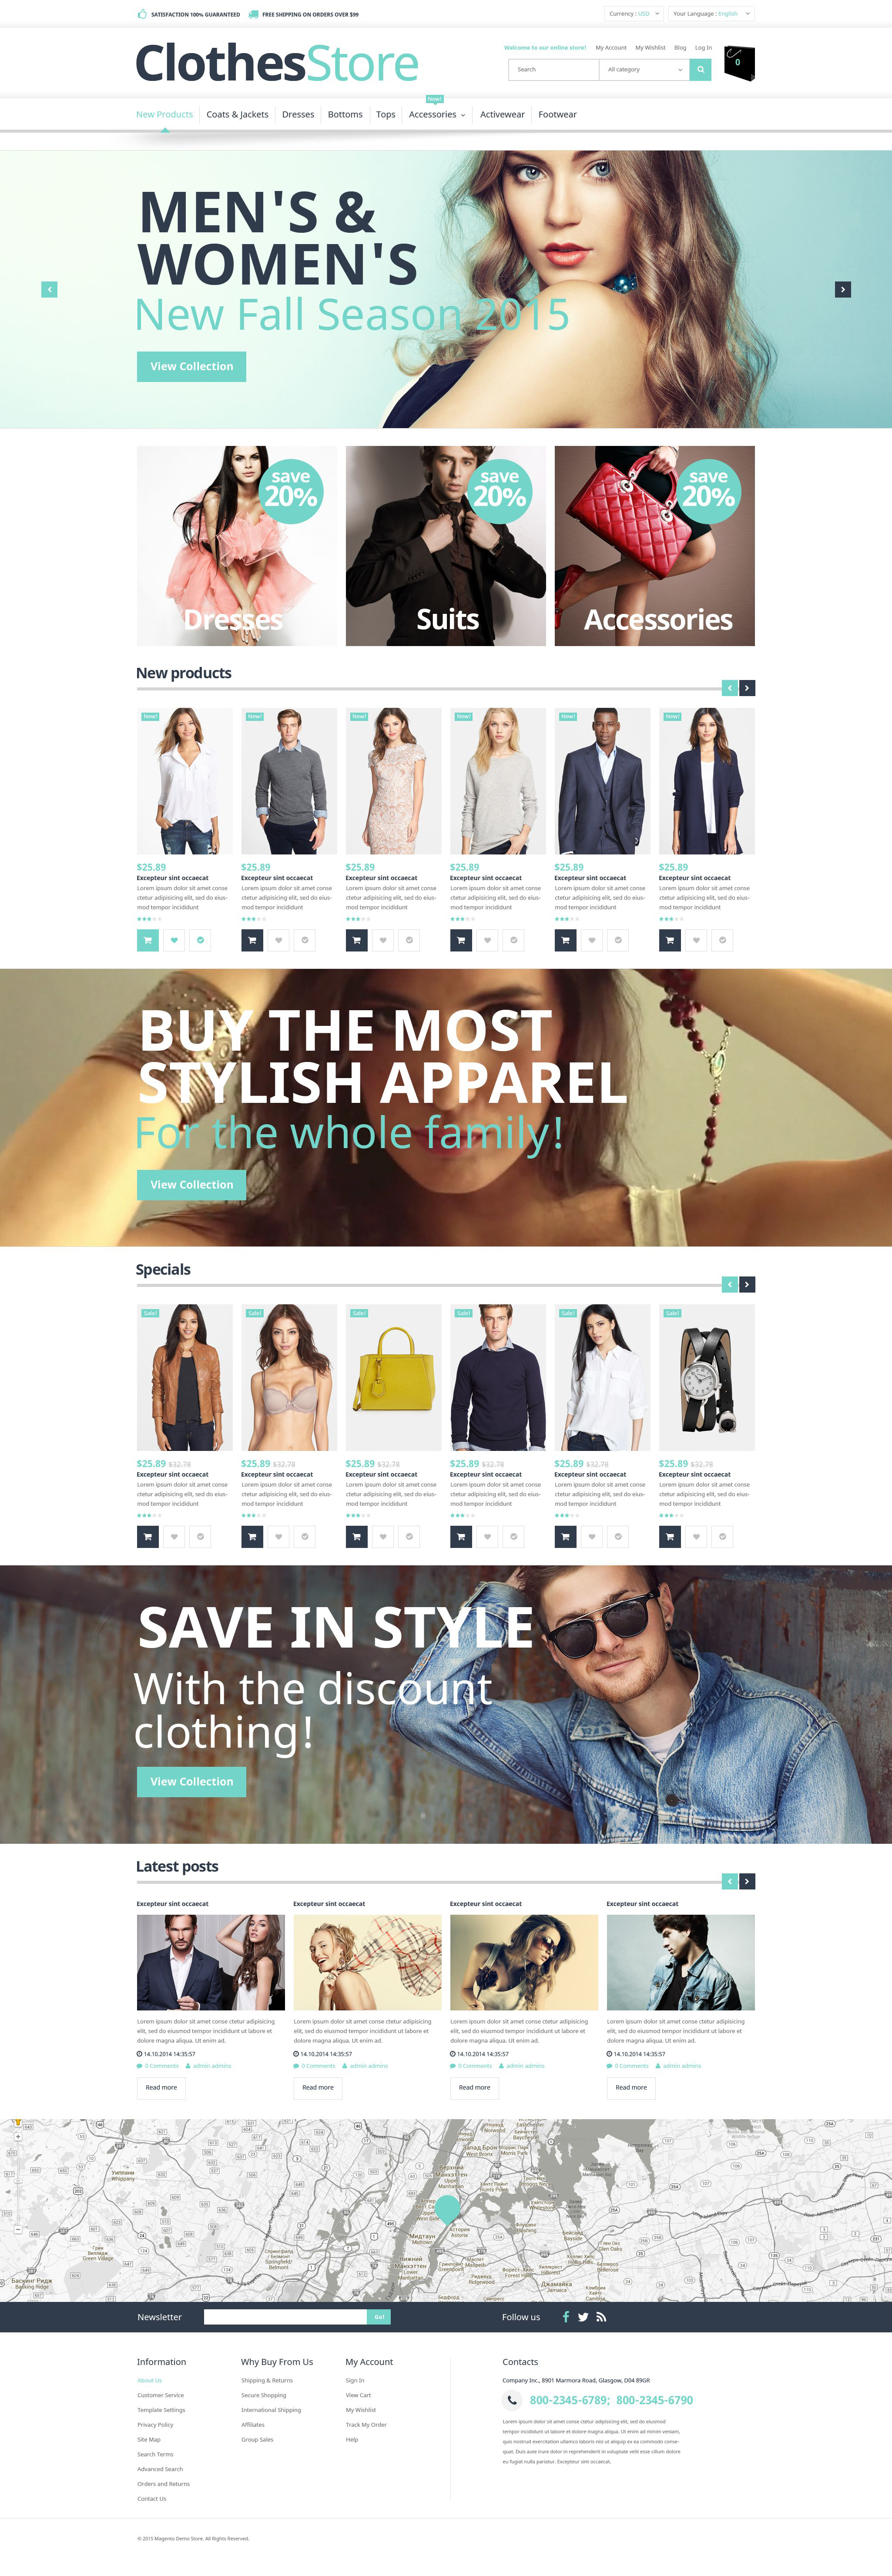 The Clothes Wear Magento Design 53078, one of the best Magento themes of its kind (fashion, most popular), also known as clothes wear Magento template, clothing Magento template, apparel Magento template, work Magento template, shoes Magento template, gloves Magento template, wear Magento template, Safety Boots WEAR footwear Magento template, shirts Magento template, protective Magento template, goggles Magento template, protective Magento template, eyewear and related with clothes wear, clothing, apparel, work, shoes, gloves, wear, Safety Boots WEAR footwear, shirts, protective, goggles, protective, eyewear, etc.